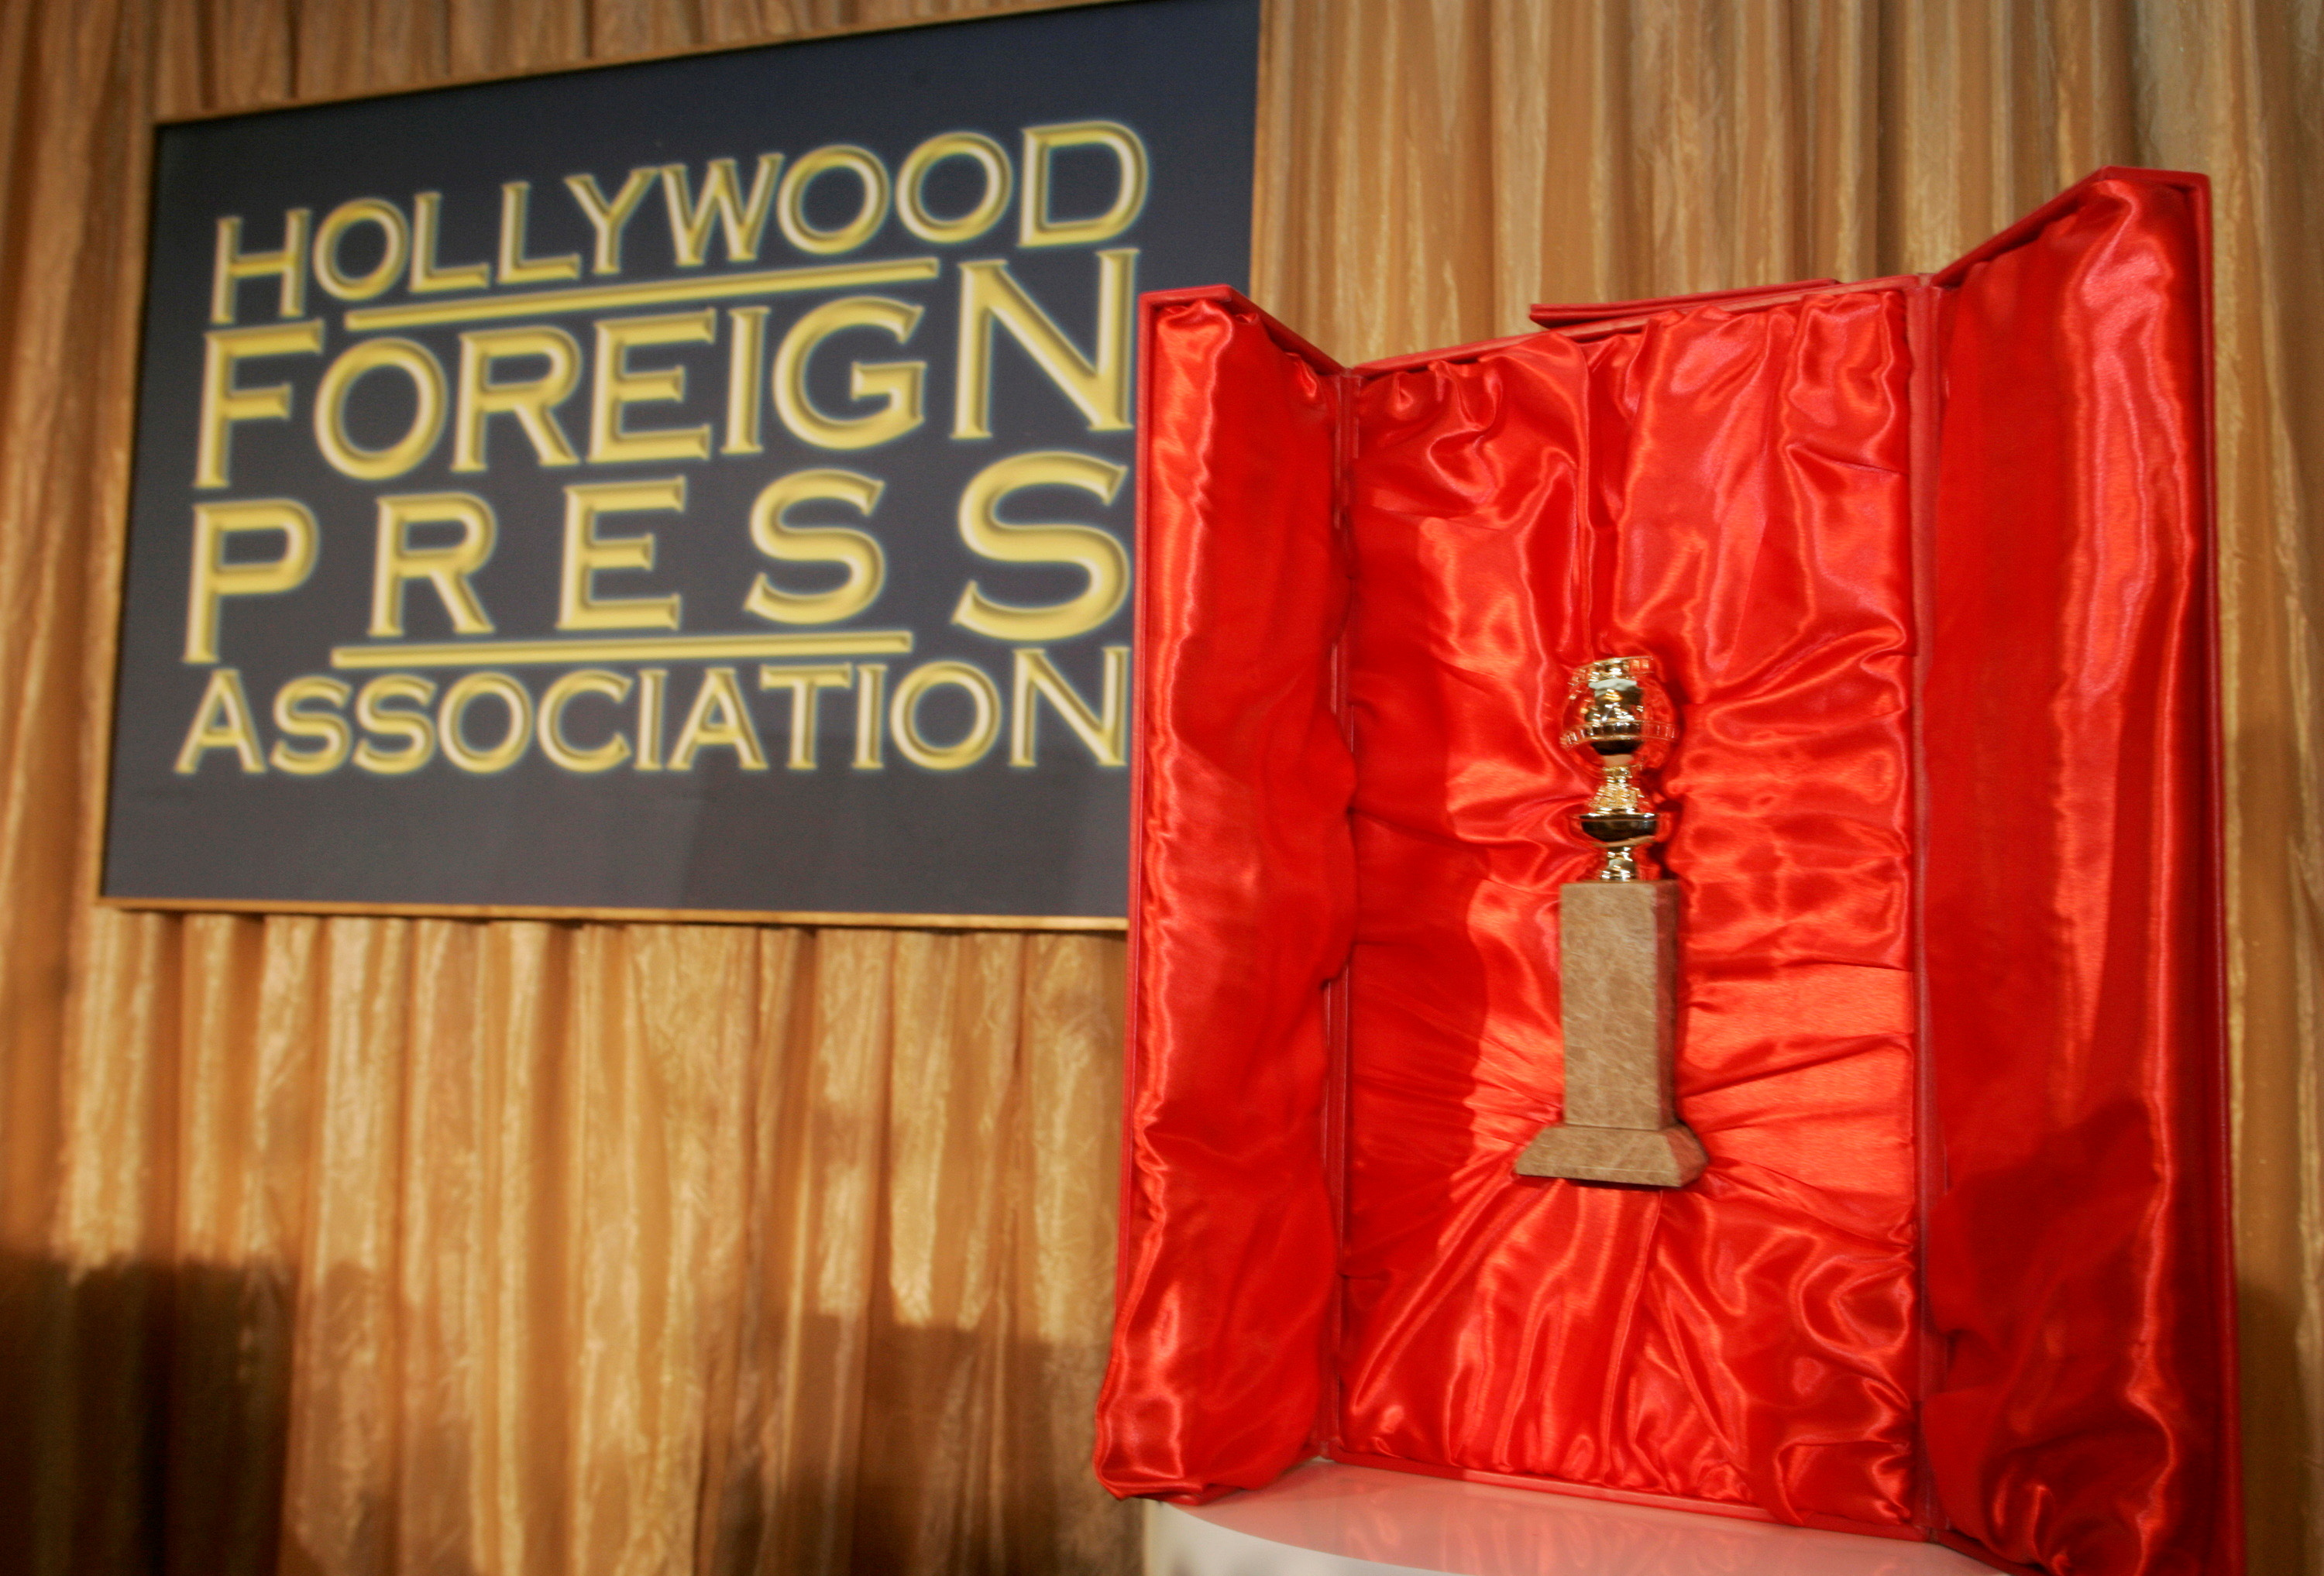 The Hollywood Foreign Press Association's Golden Globe statuette is seen with its red velvet-lined, leather-bound chest during a news conference in Beverly Hills, California January 6, 2009. REUTERS/Fred Prouser/File Photo